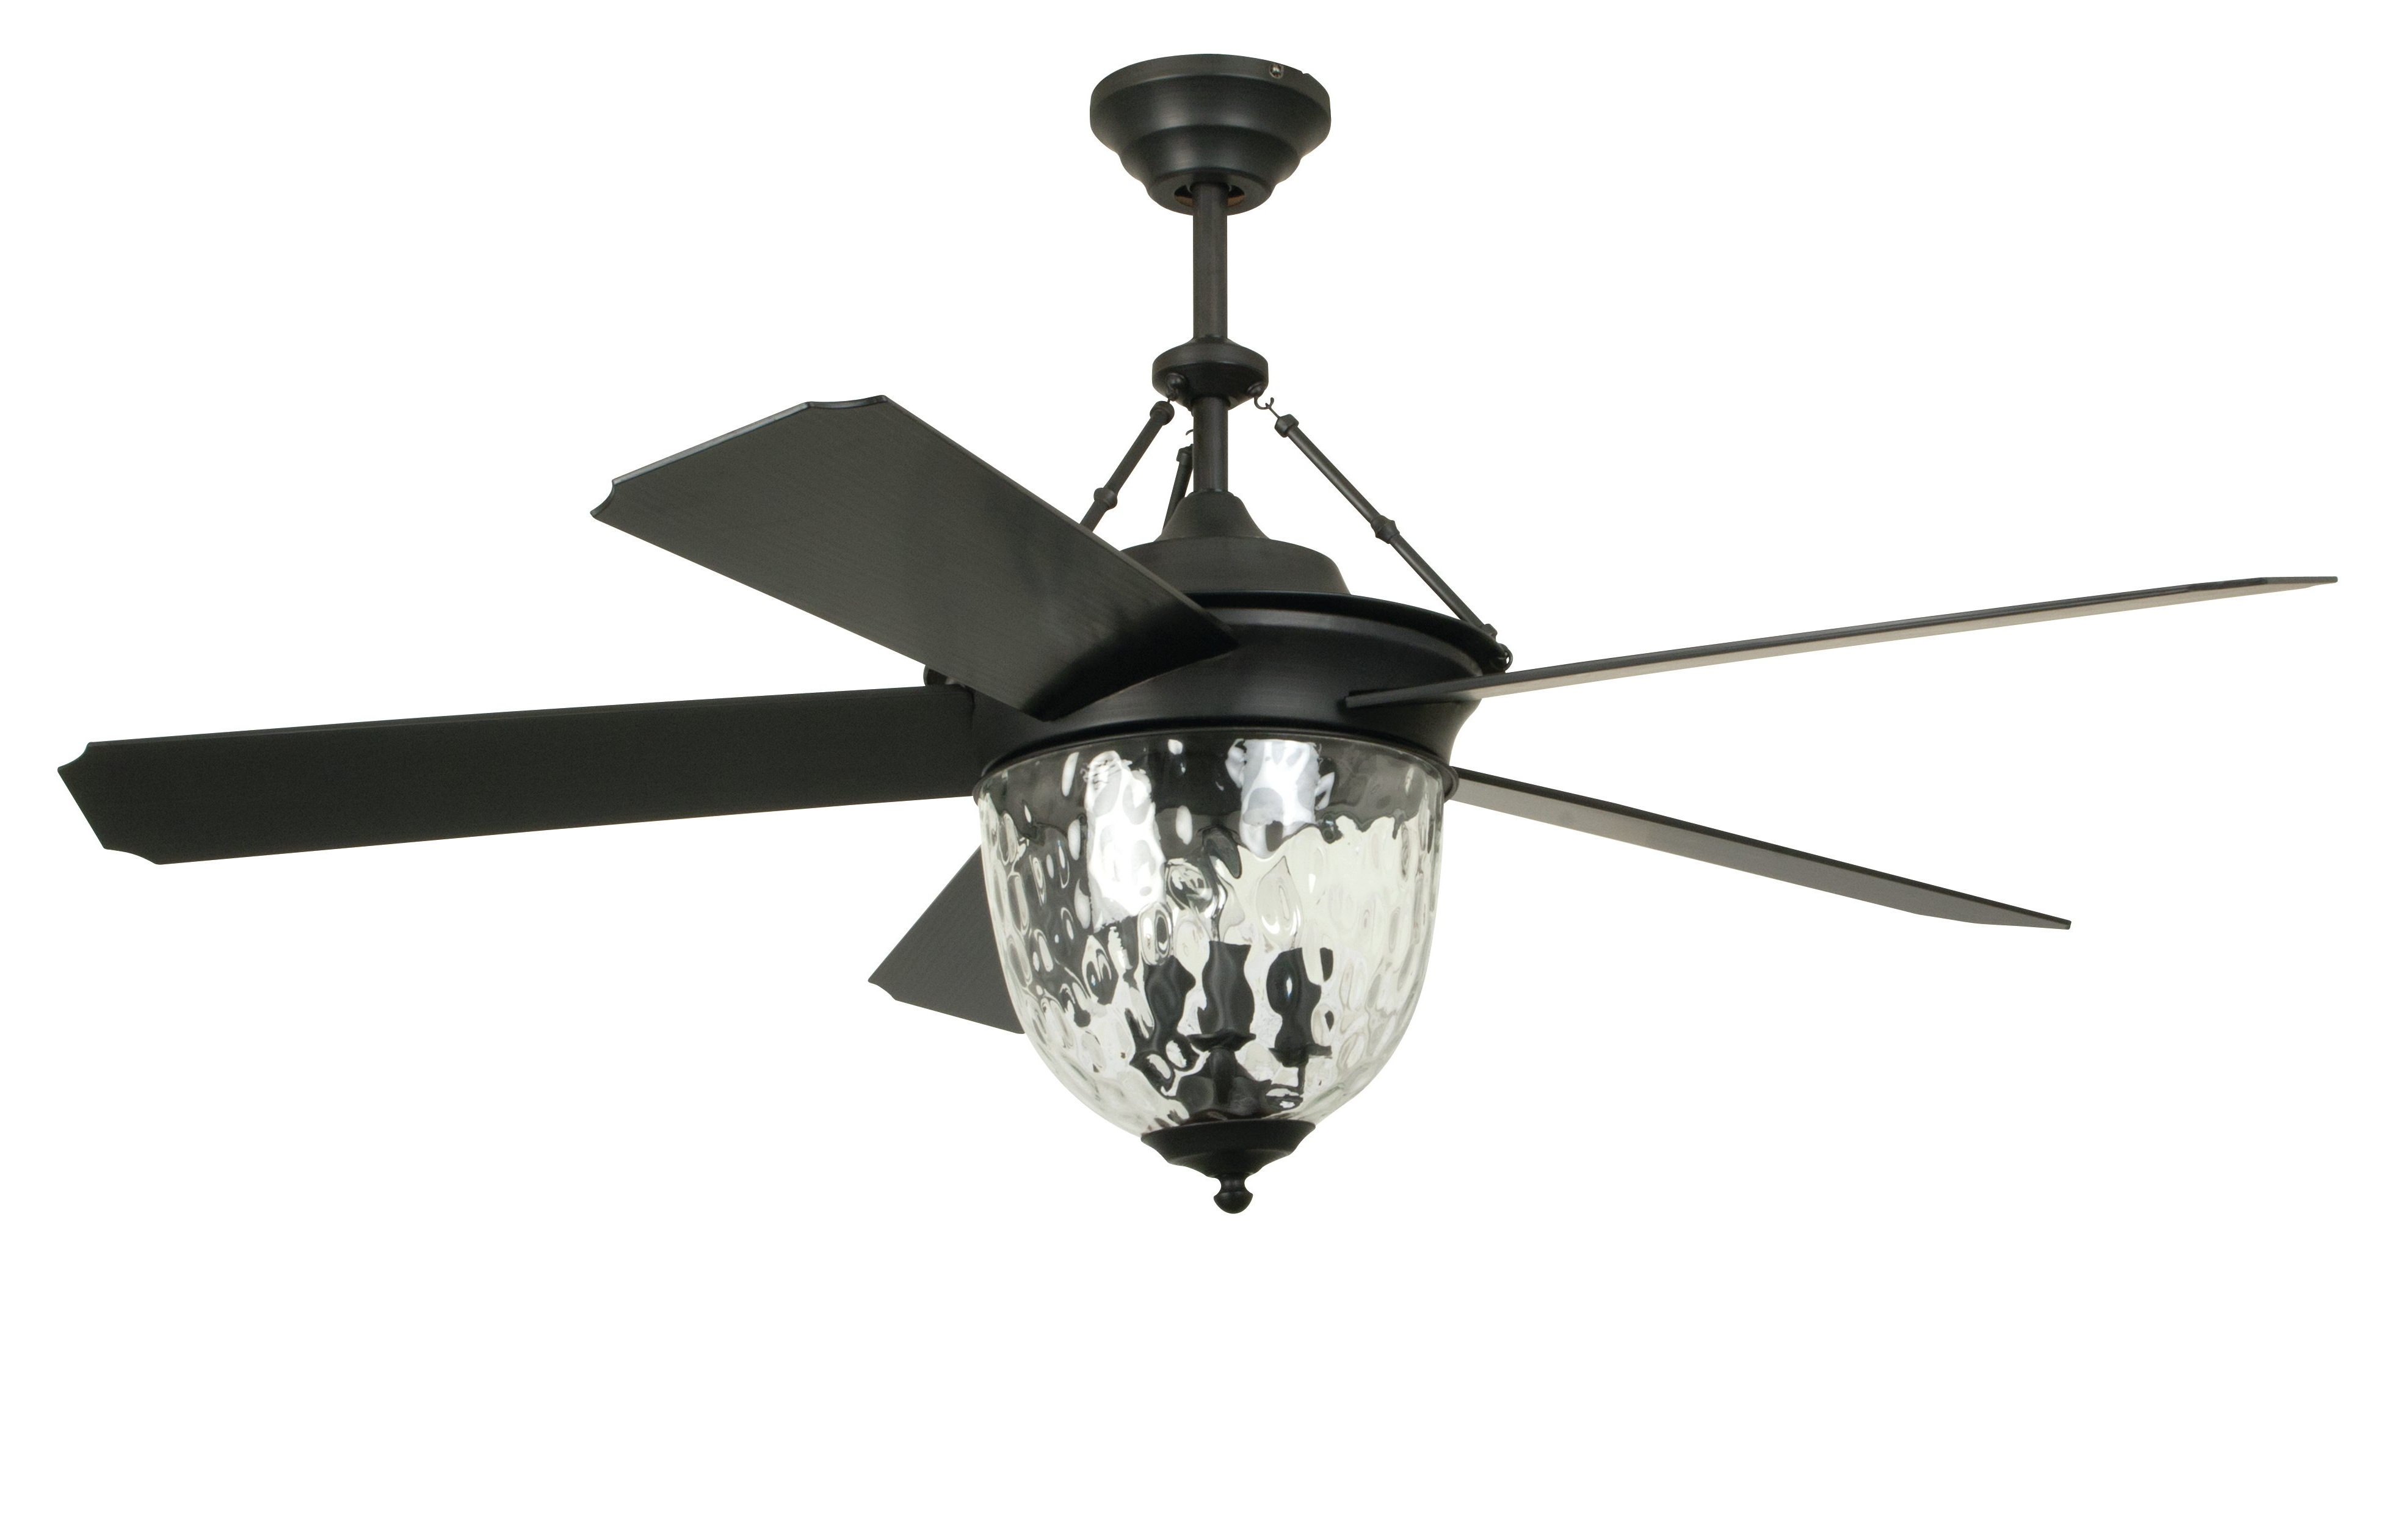 "52"" Fairmead 5 Blade Ceiling Fan With Wall Remote Throughout Preferred Wilburton 5 Blade Ceiling Fans With Remote (Gallery 9 of 20)"